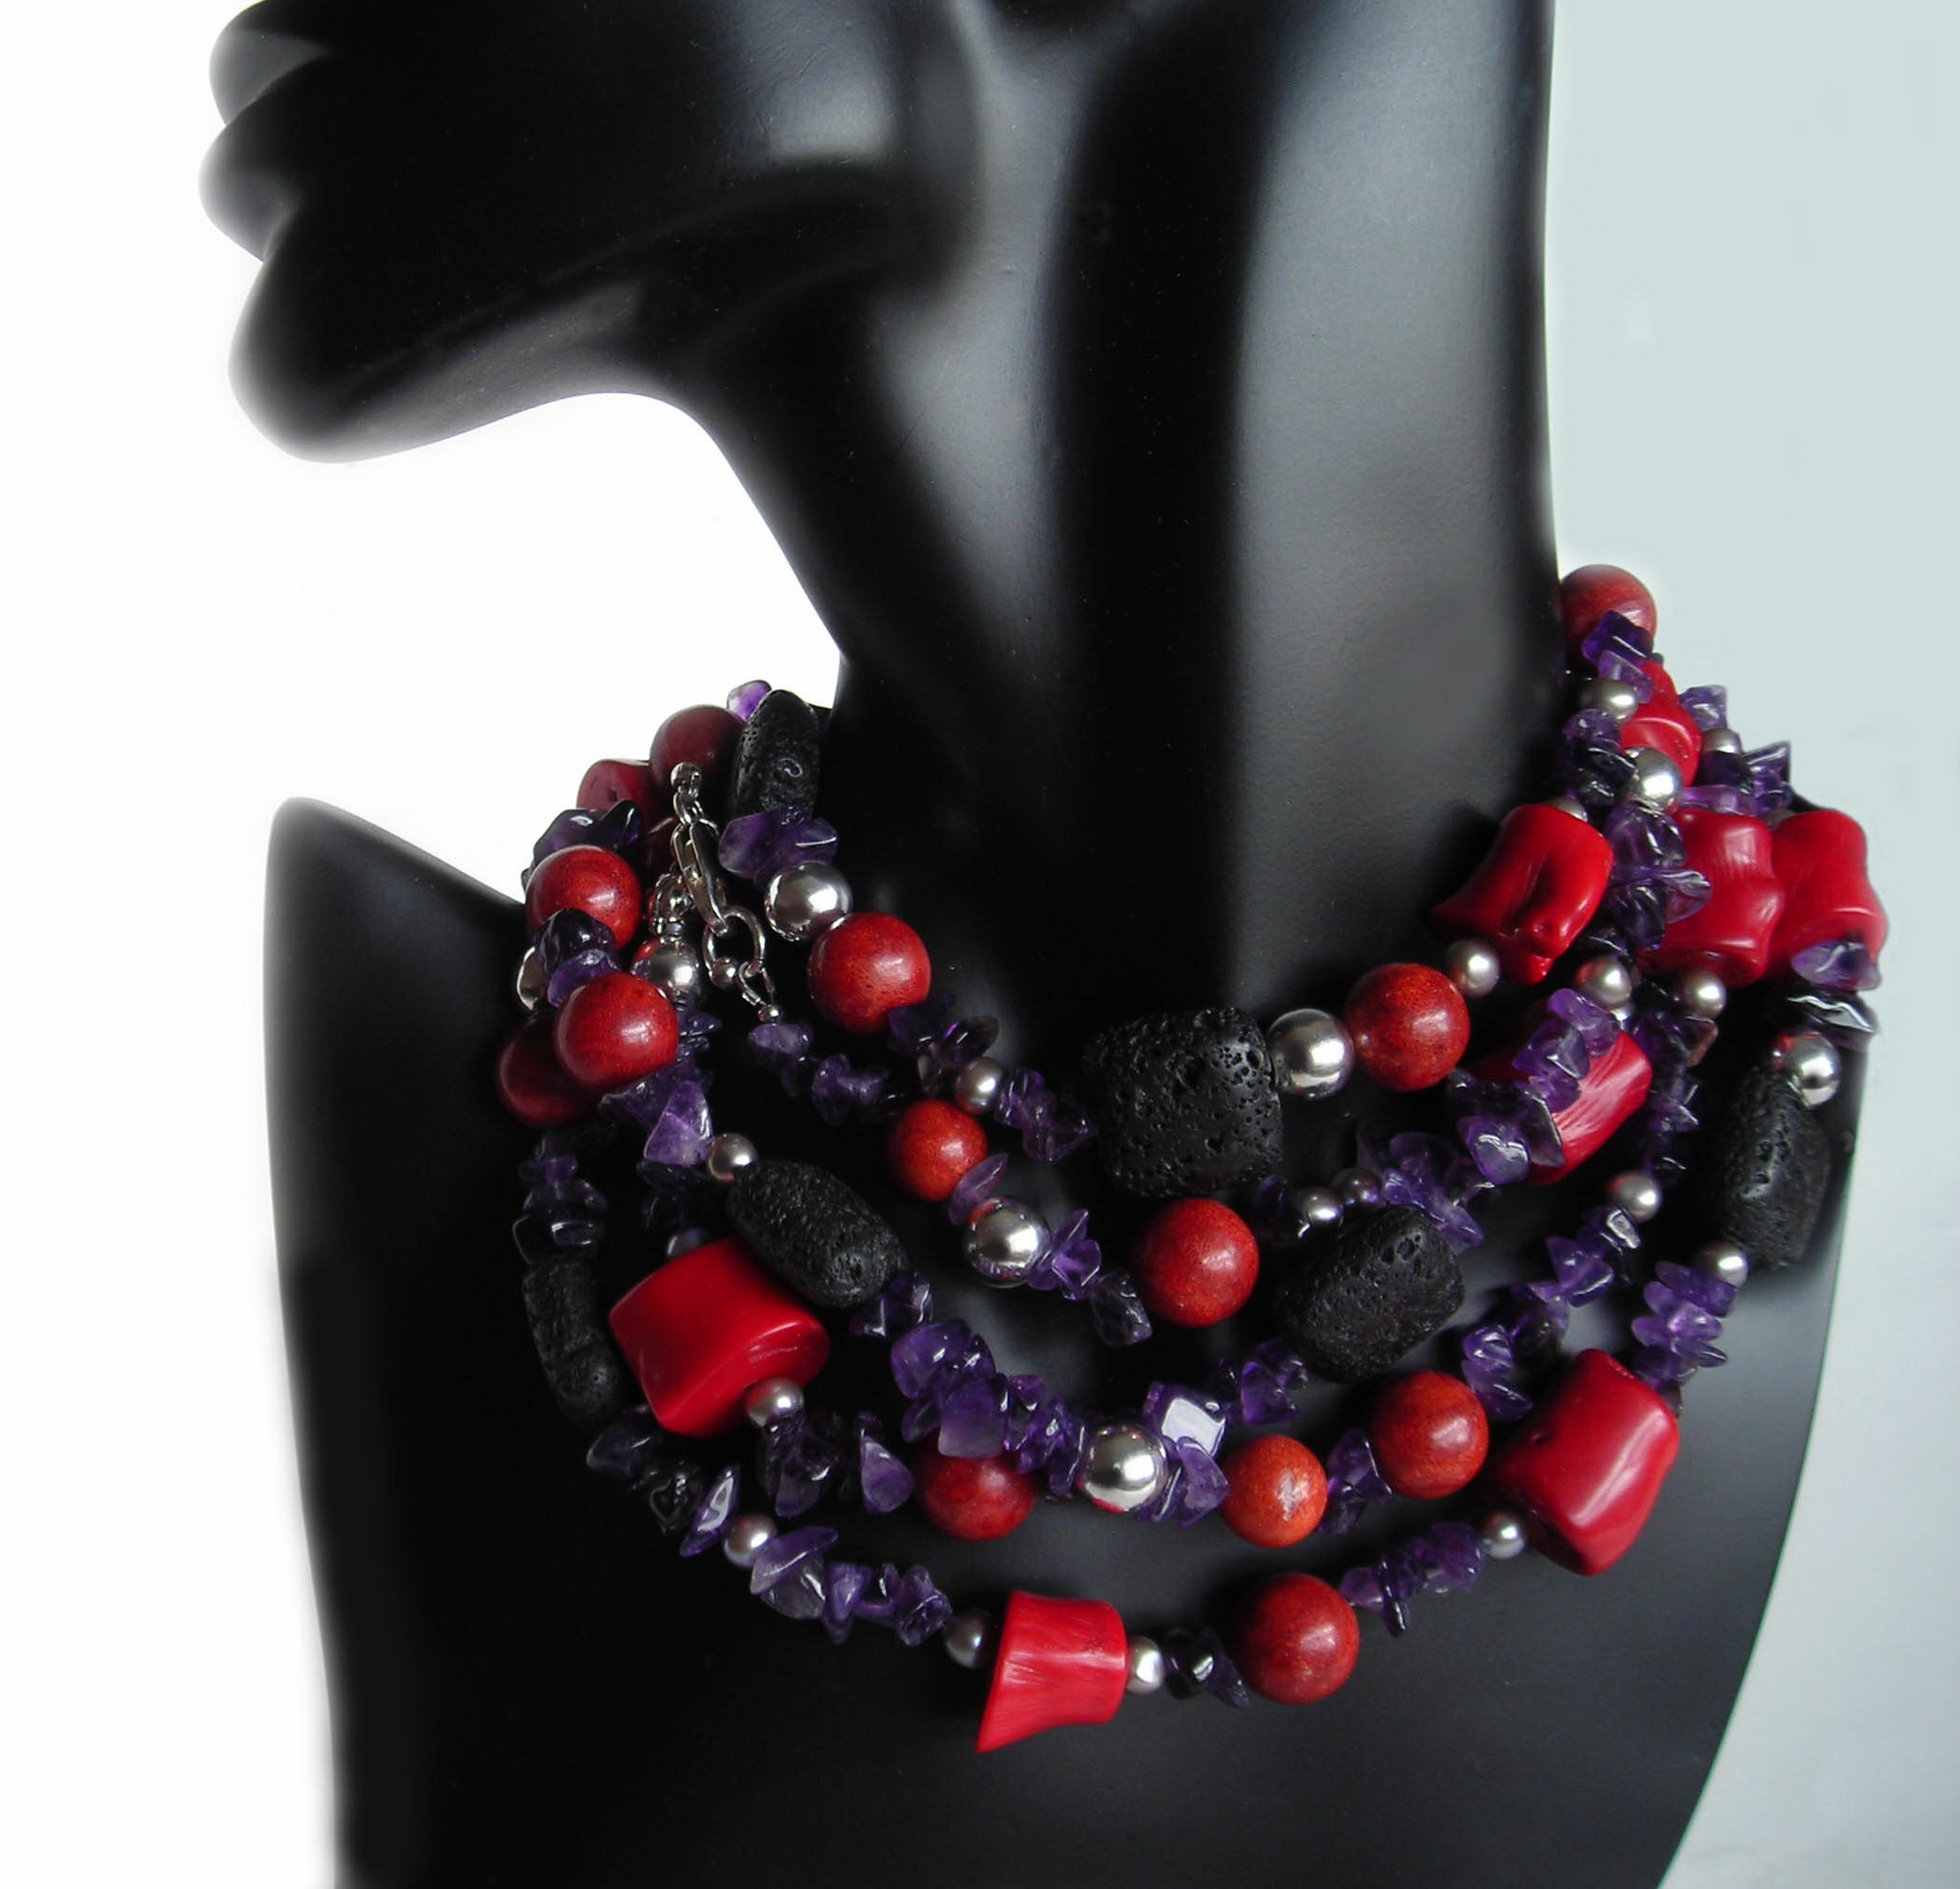 The JuJube Necklace